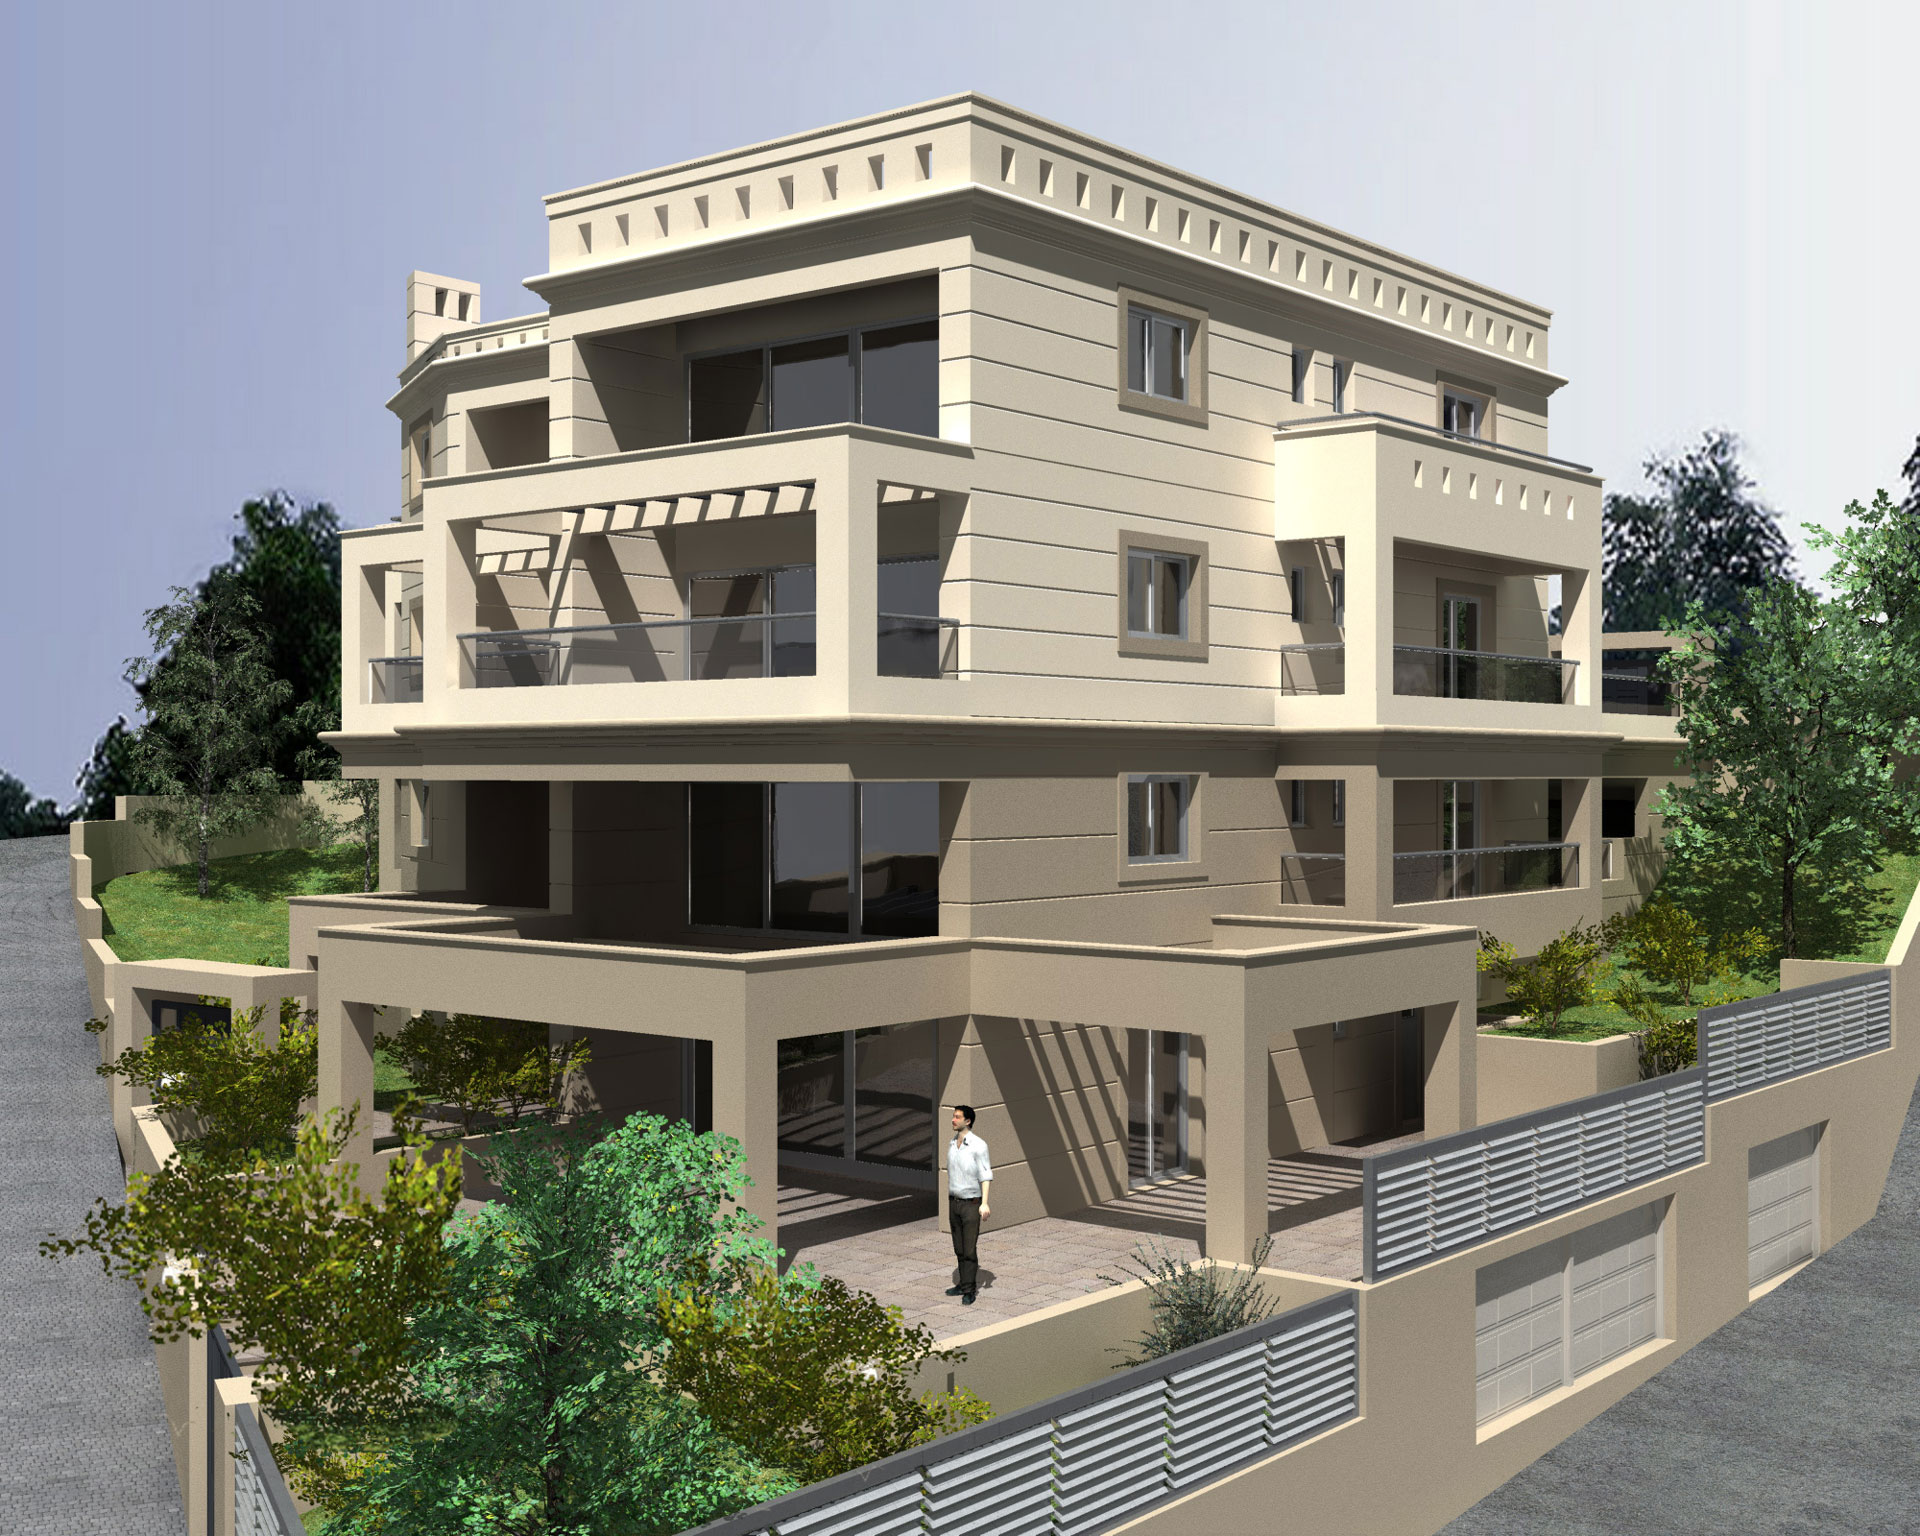 Design of an apartment block in kifisia athens for Apartment block plans